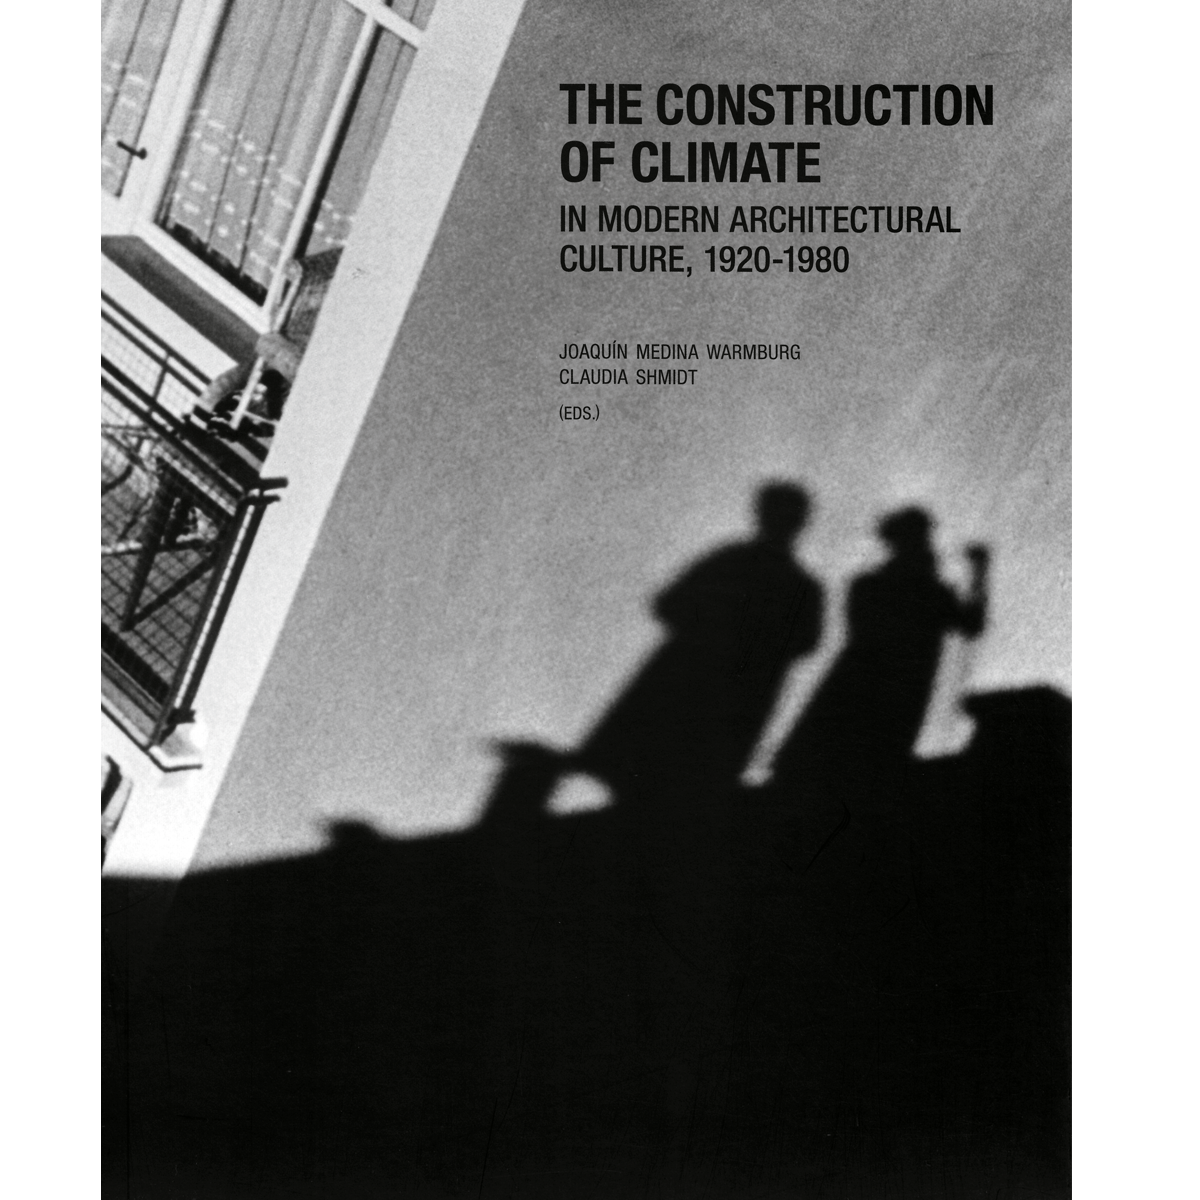 The Construction of Climate in Modern Architectural Culture (1920-1980)